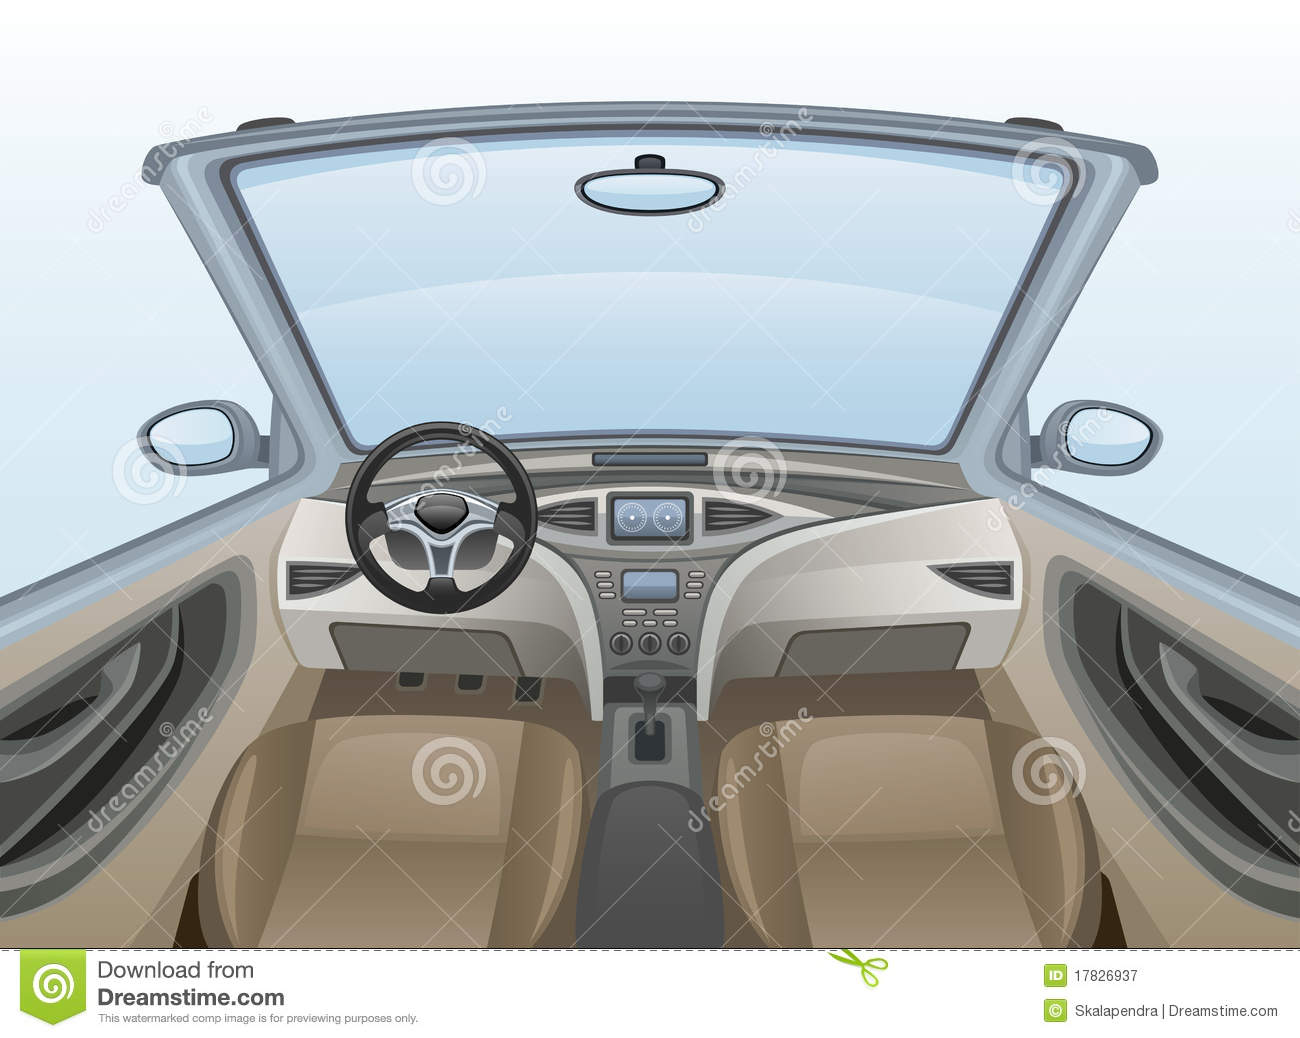 Car interior clipart.